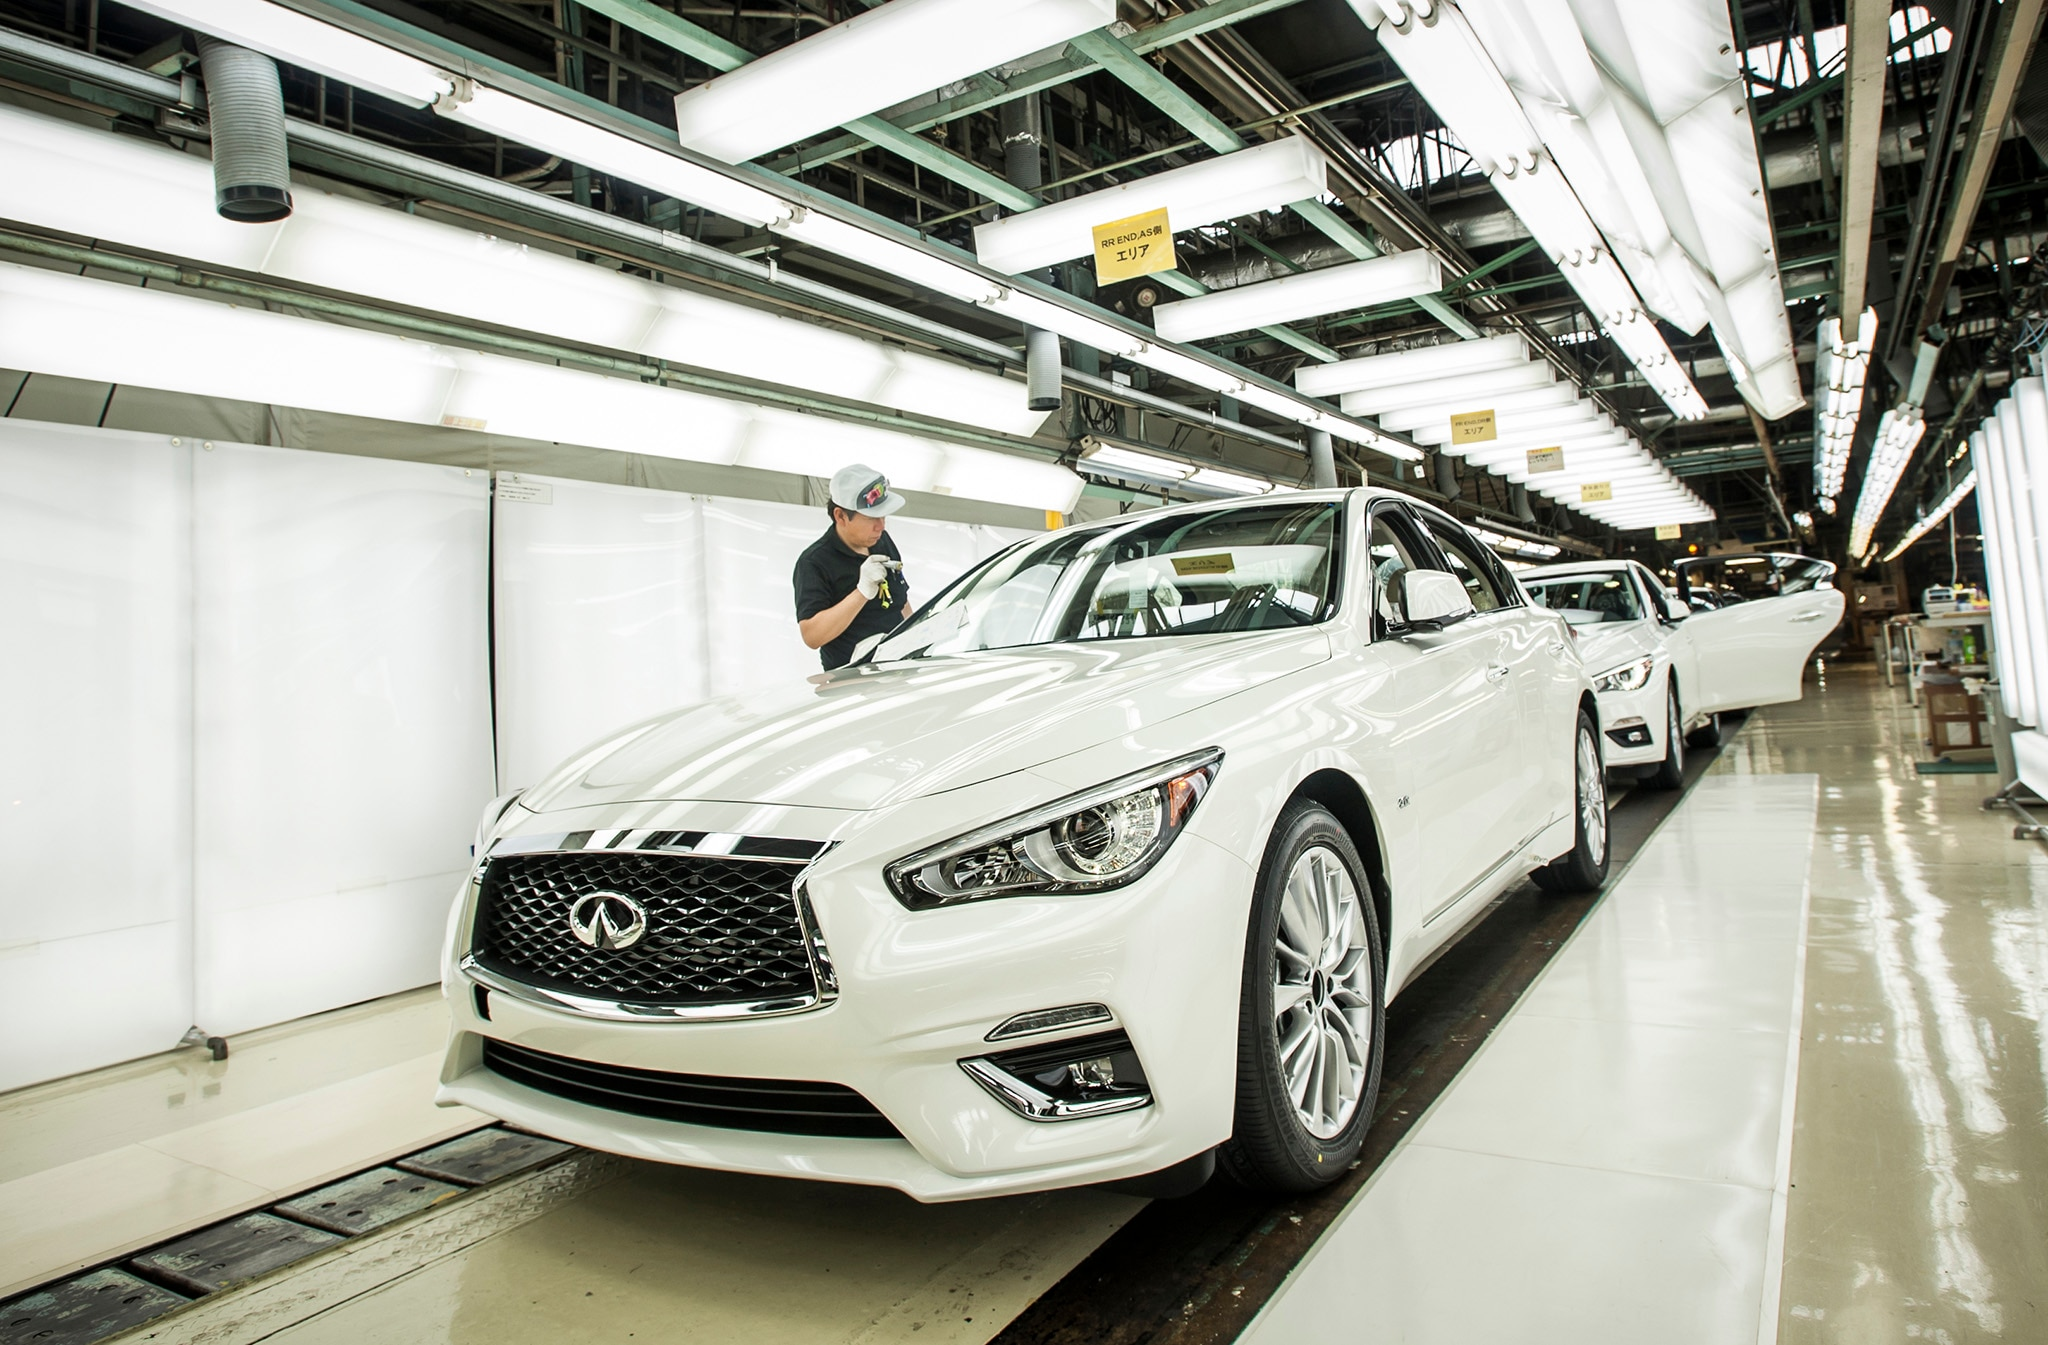 2018 infiniti m35. exellent m35 u201cwe  throughout 2018 infiniti m35